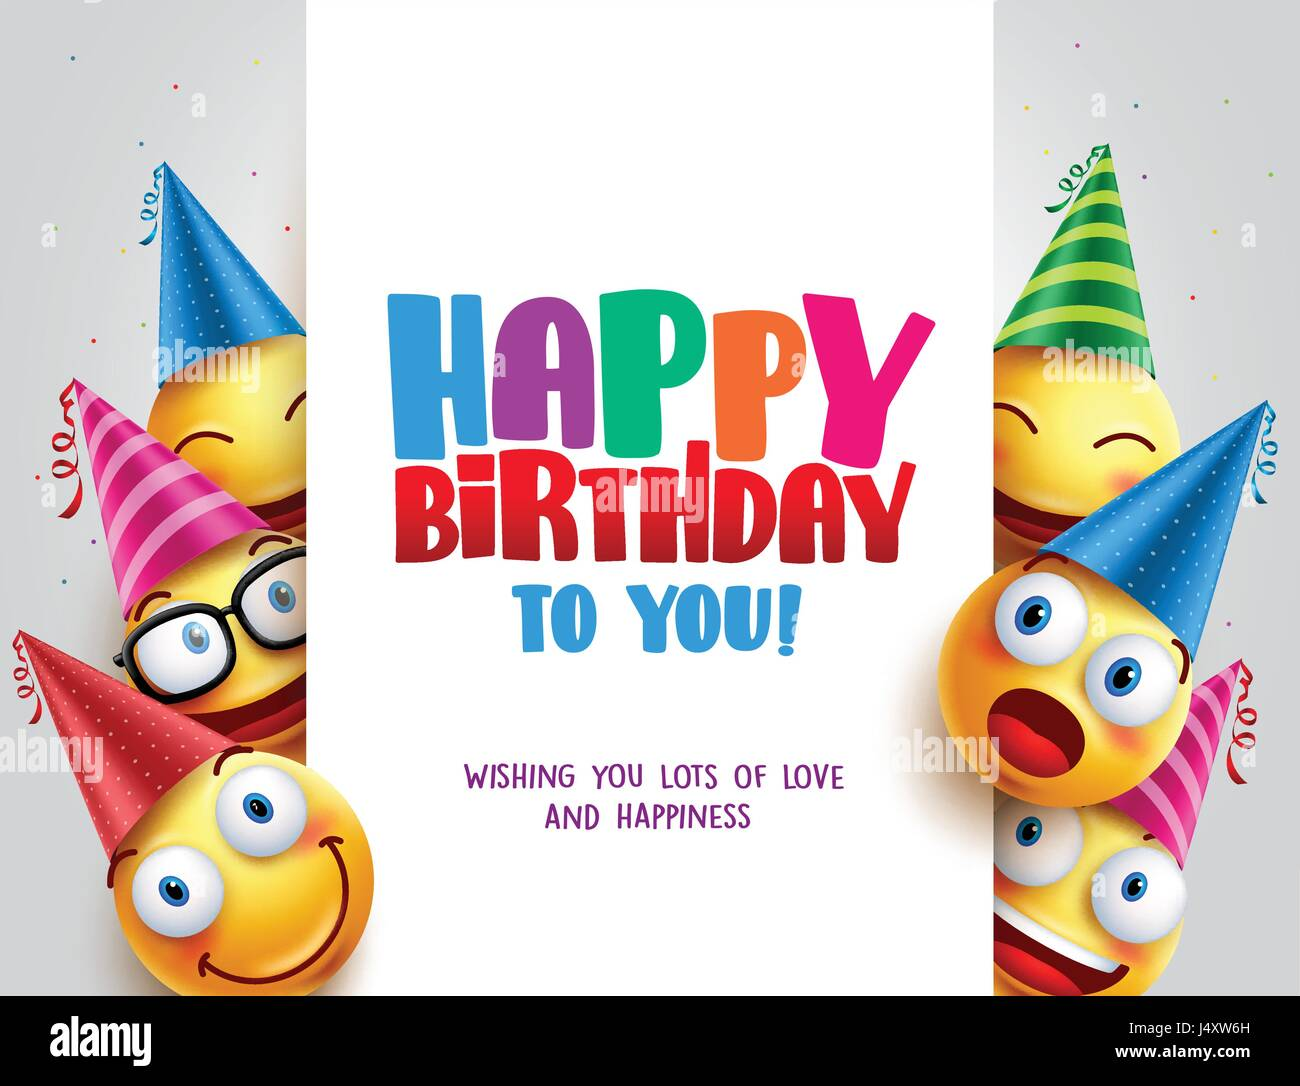 70 Best Happy Birthday Images and Pictures